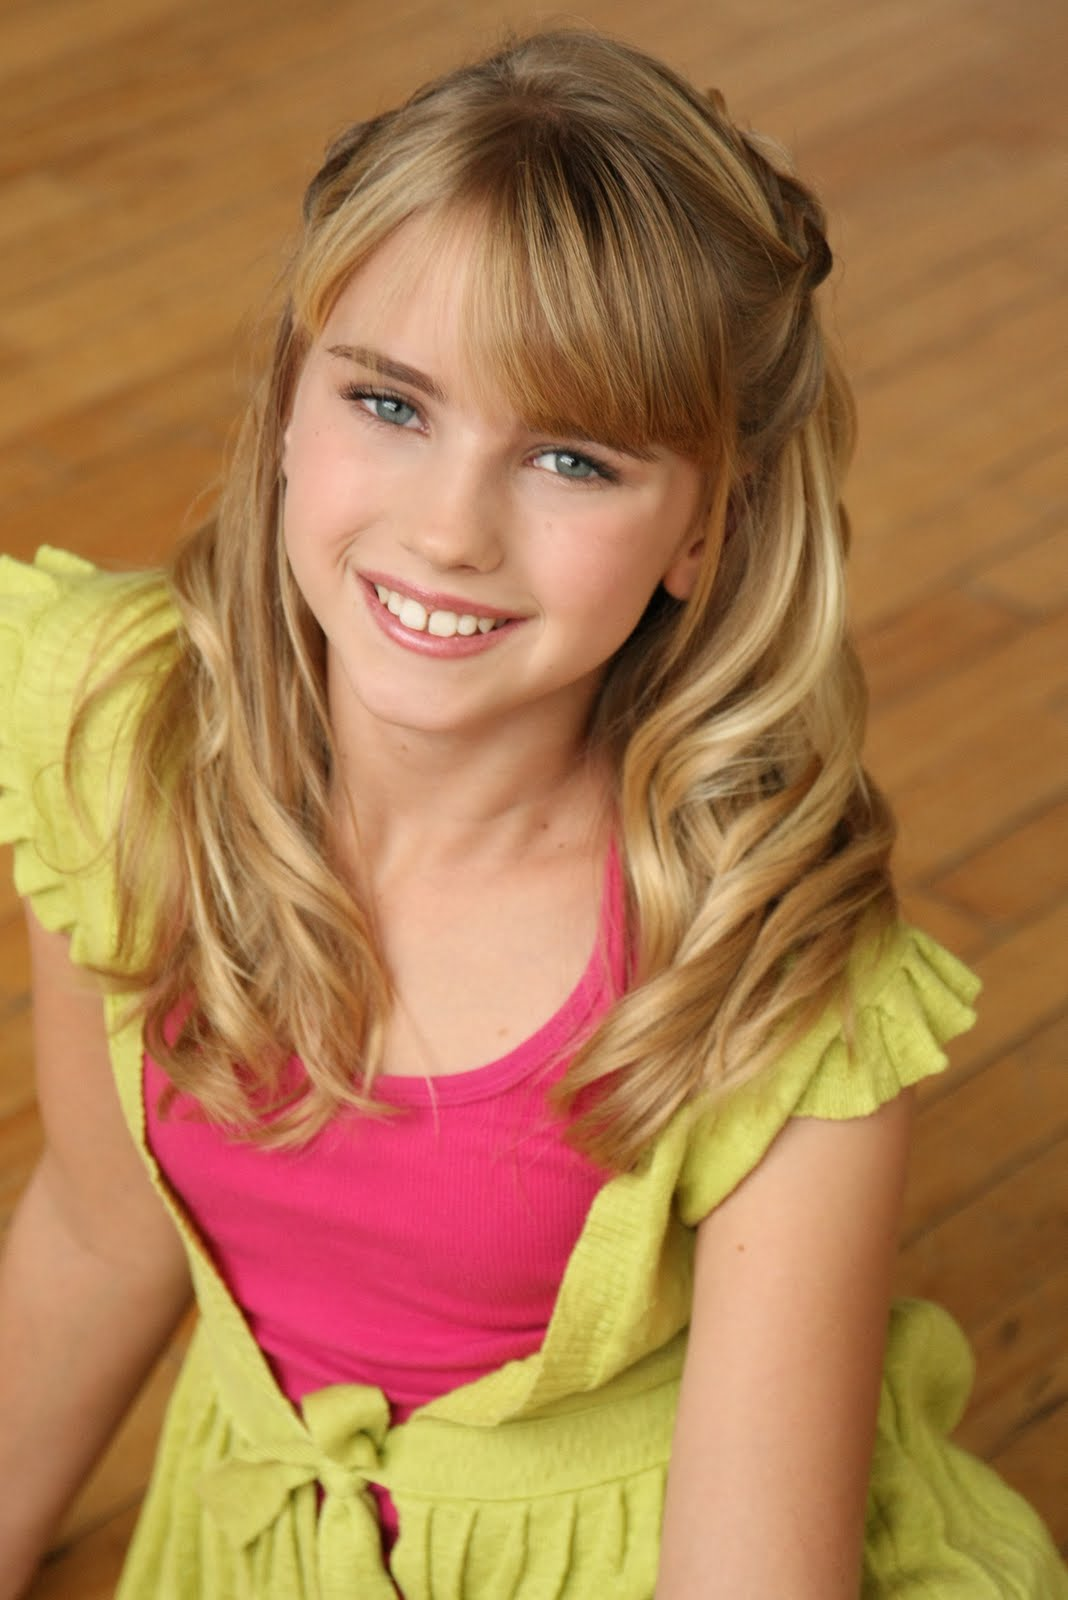 7Yo Models http://barbizonbiz.blogspot.com/2010/05/alannah-kennedy-in